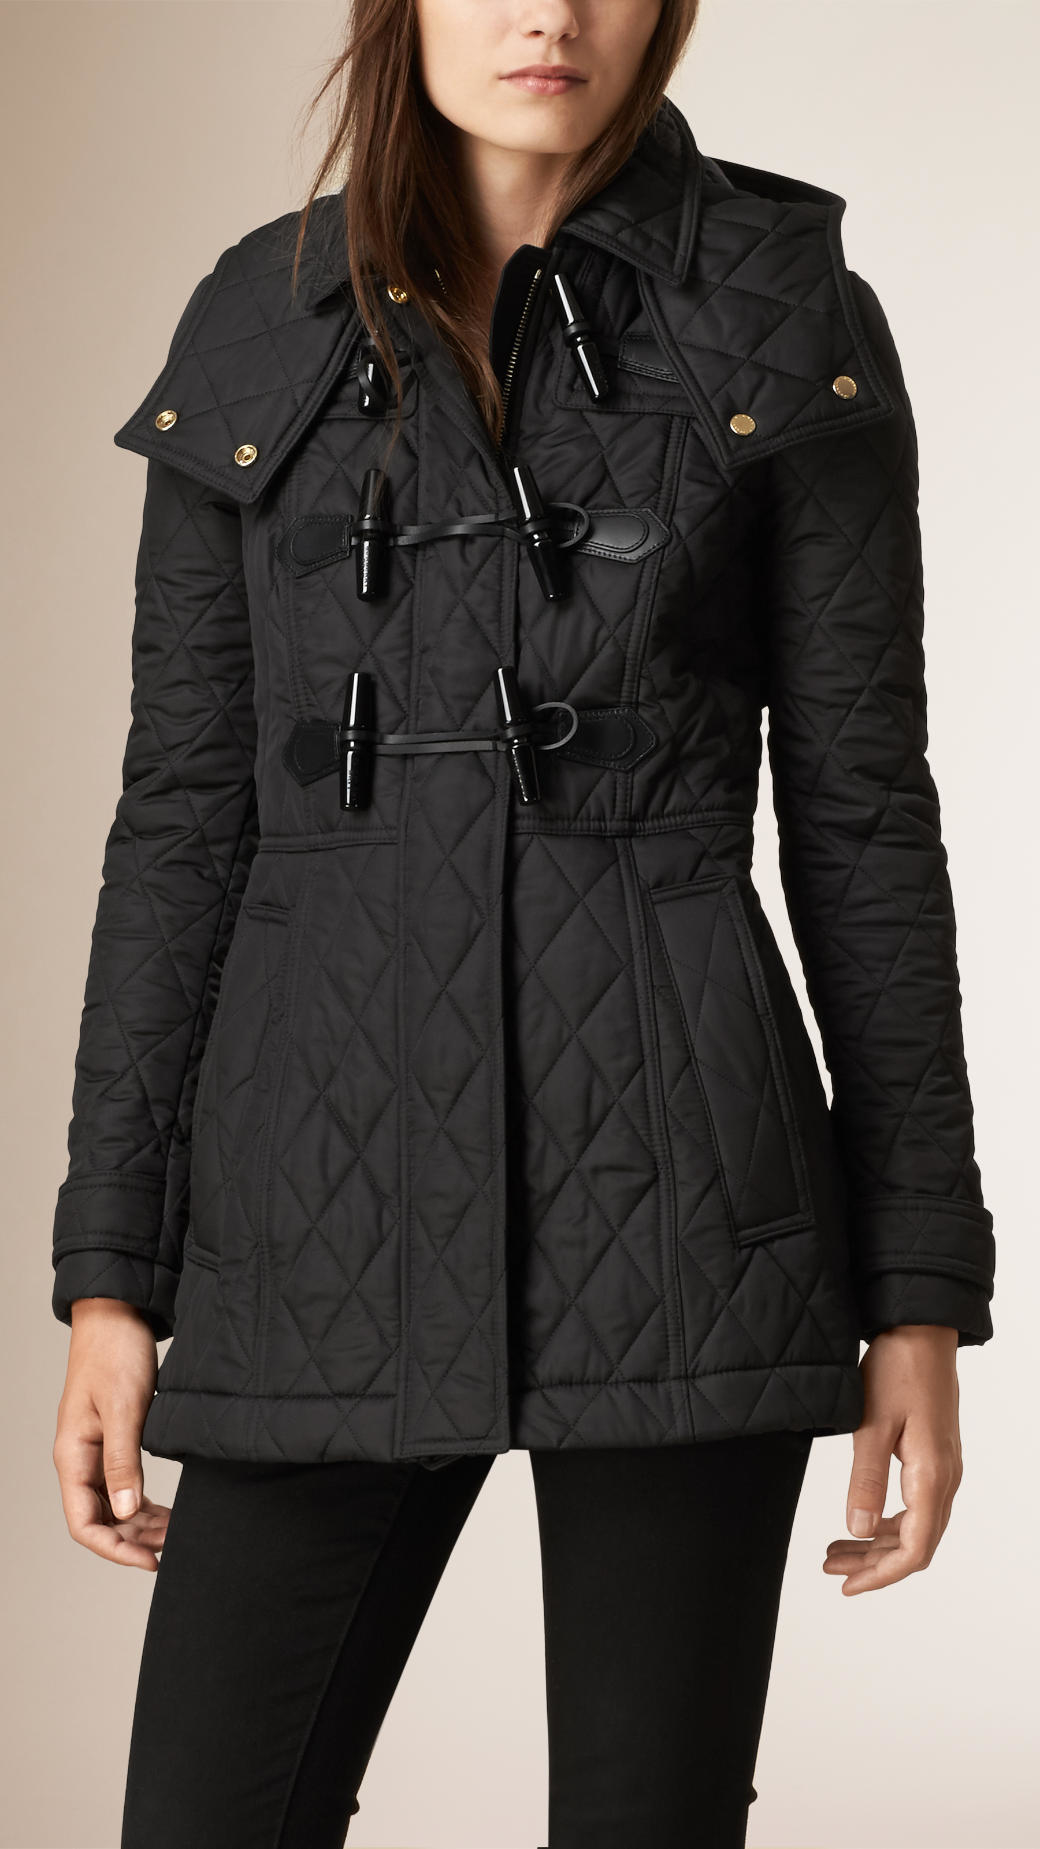 Burberry Diamond-Quilted Shell Duffle Coat in Black | Lyst